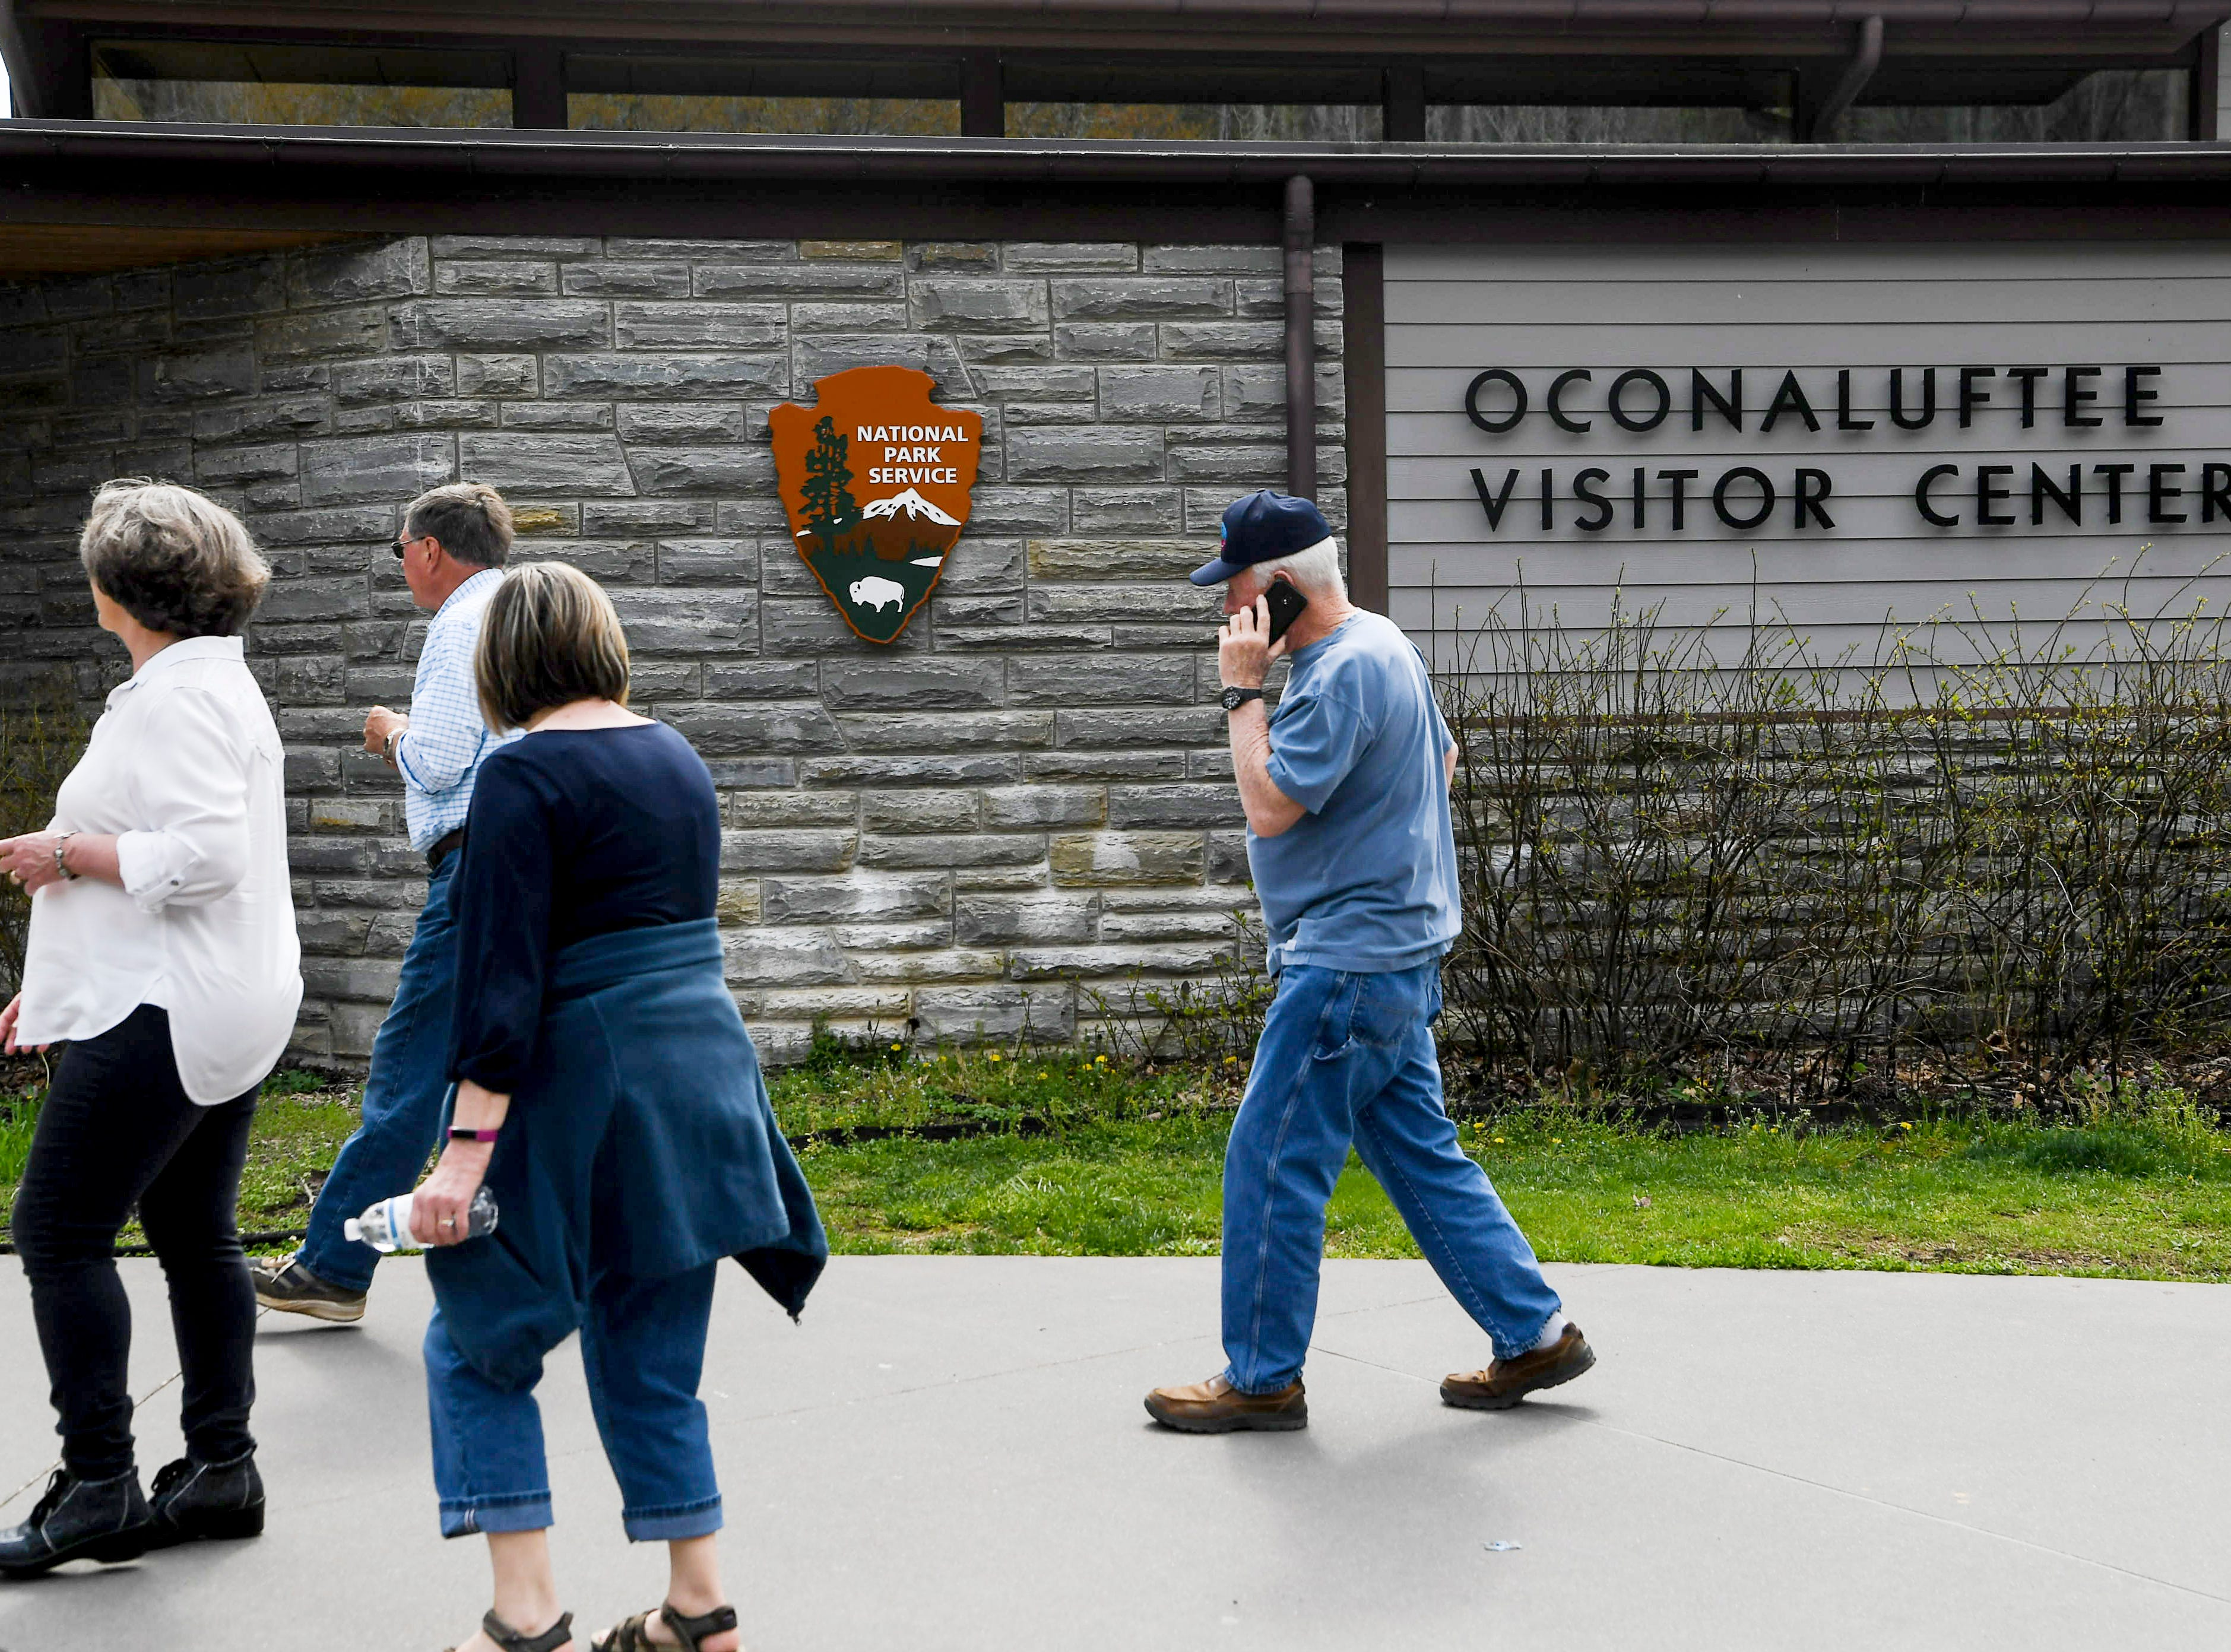 The Oconaluftee Visitor Center at Great Smoky Mountain National Park April 11, 2019.